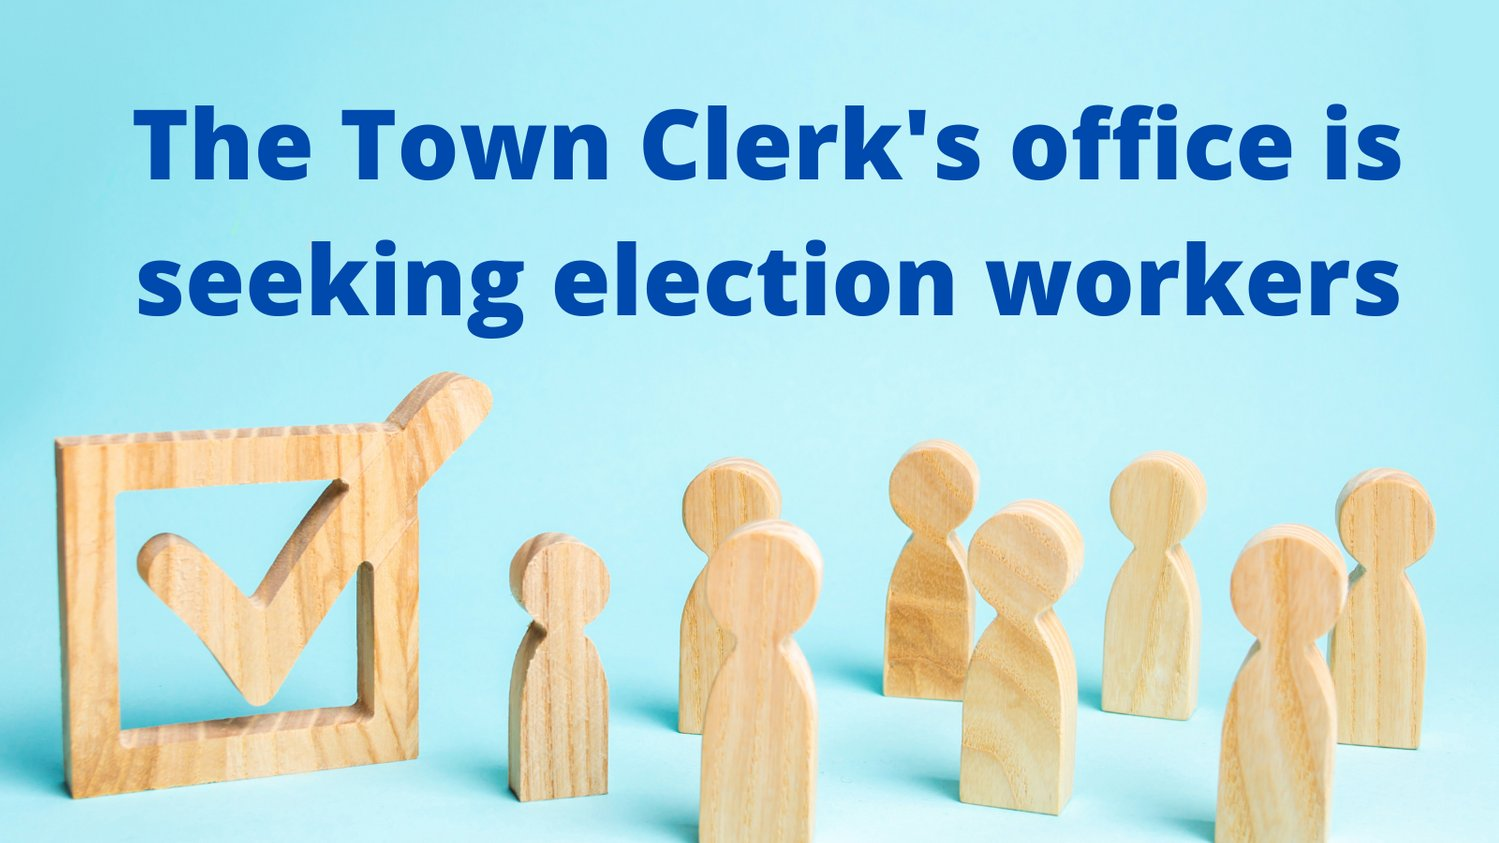 The Franklin Town Clerks office is seeking election workers